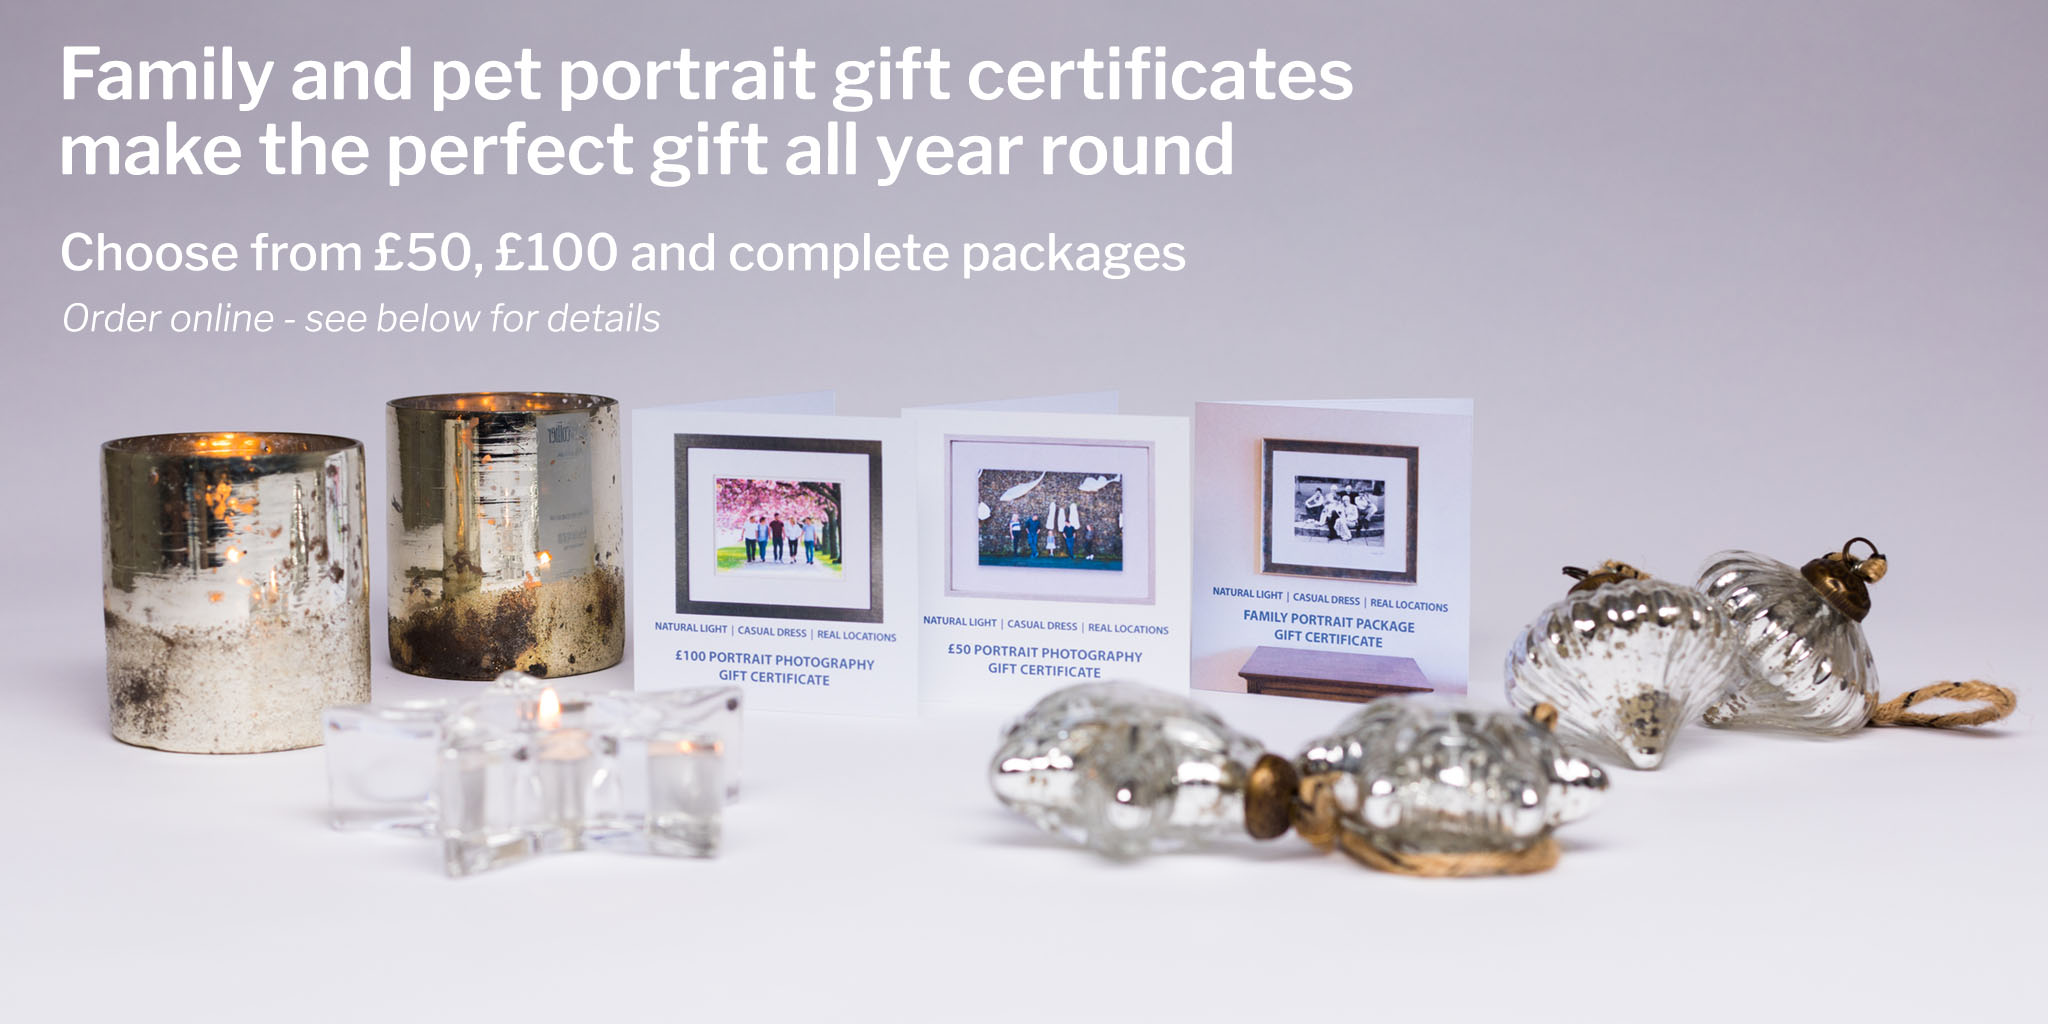 Family portrait gift vouchers from just £50